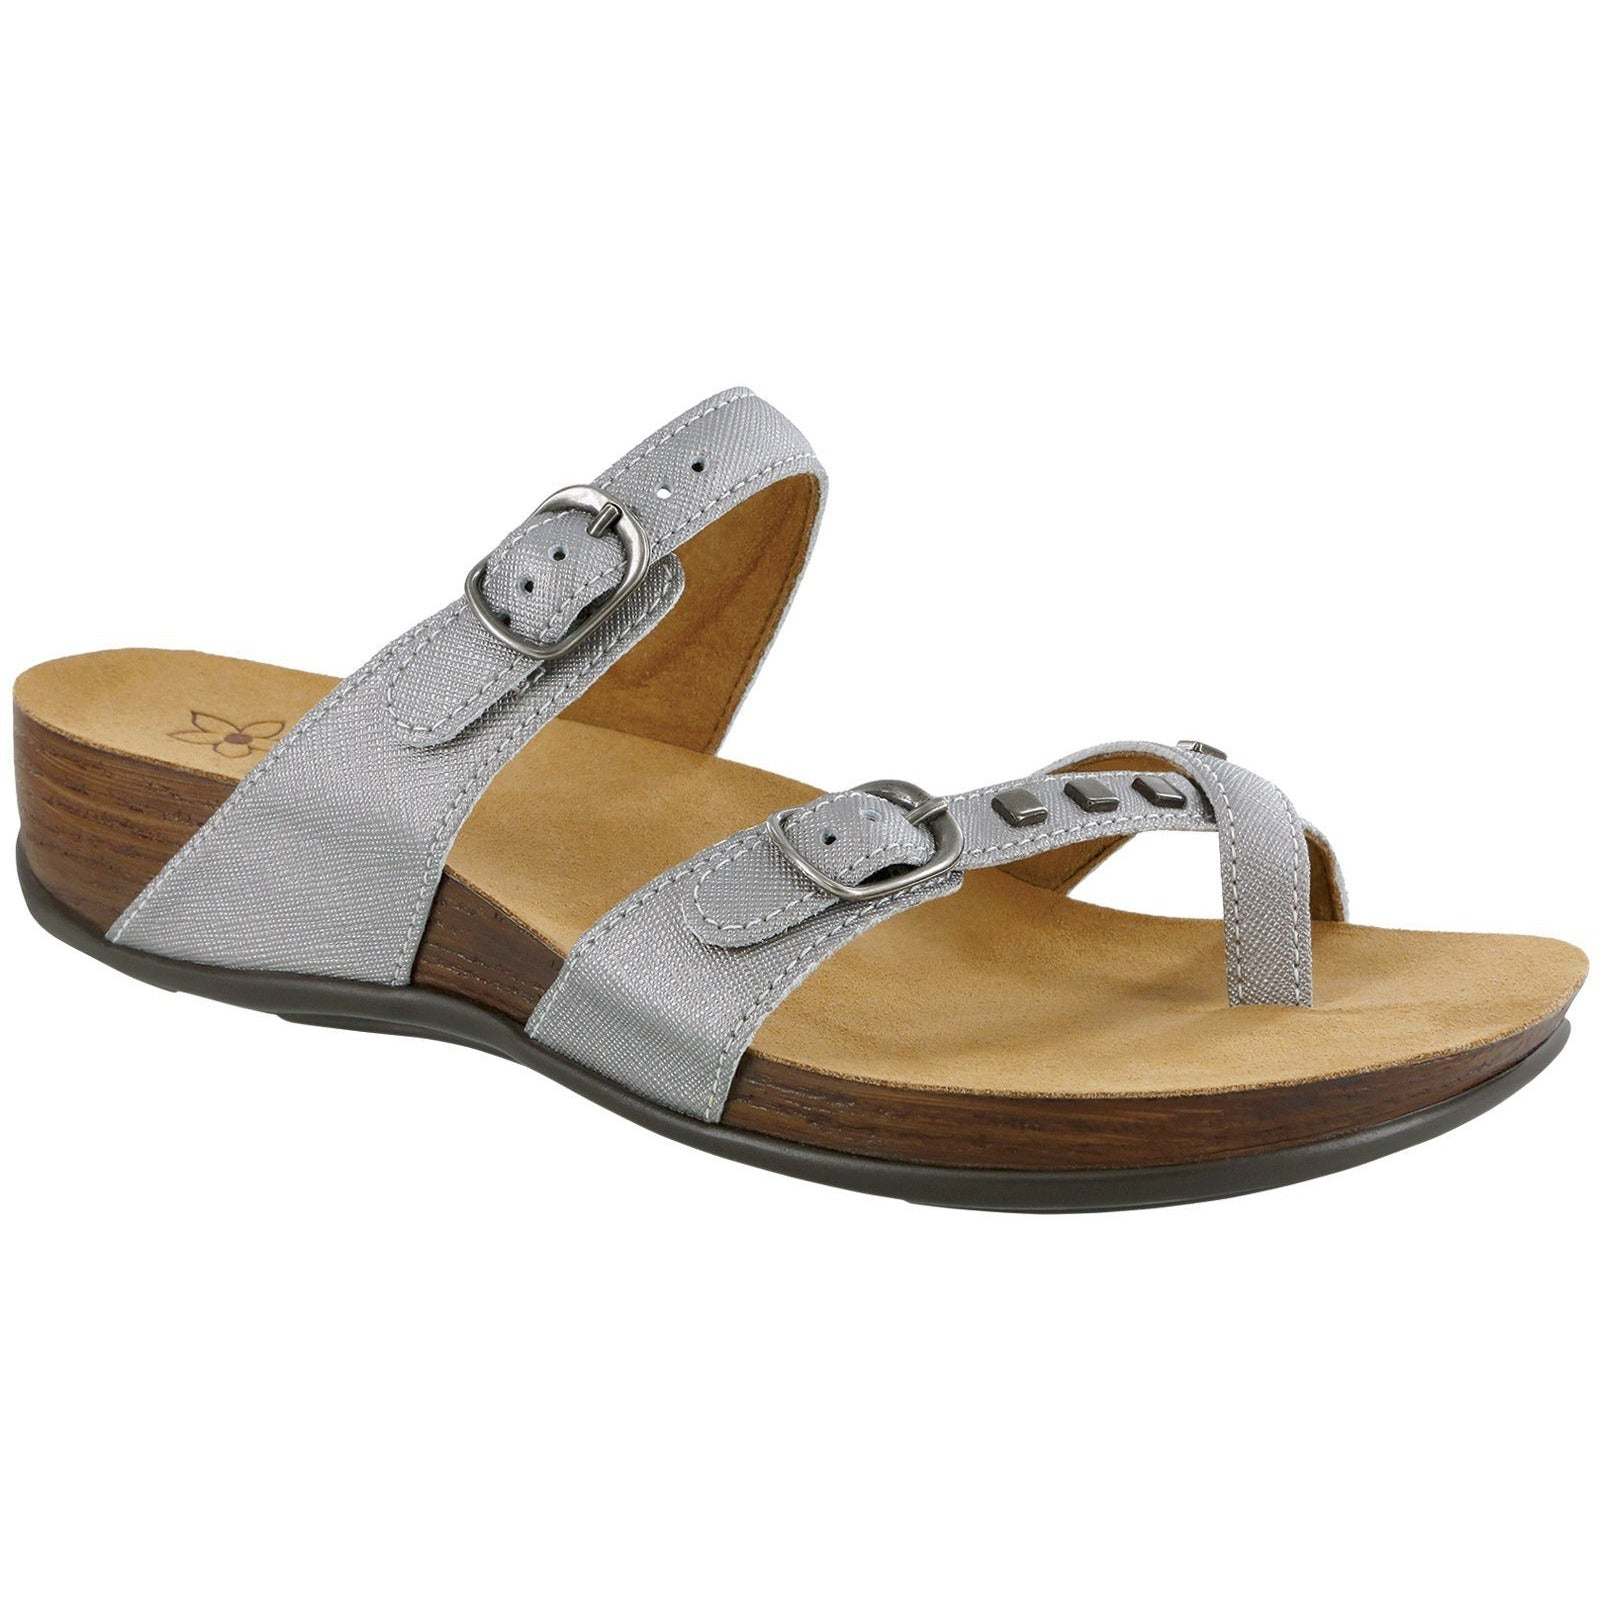 Jett Steel by SAS Shoes: Comfort Women's Sandals